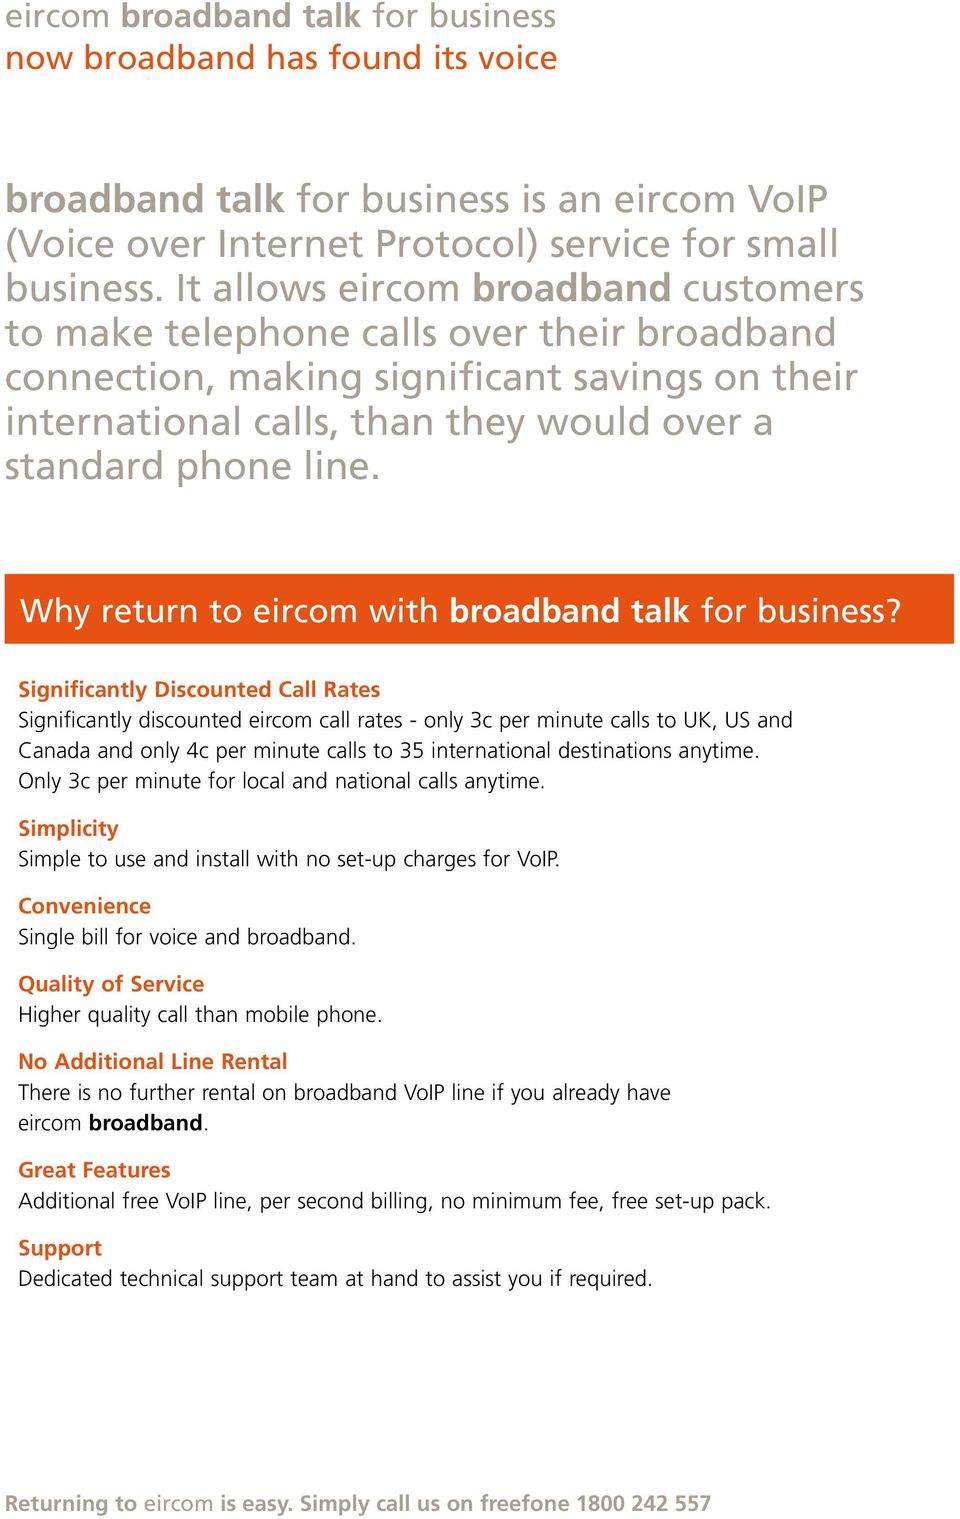 Why return to eircom with broadband talk for business?